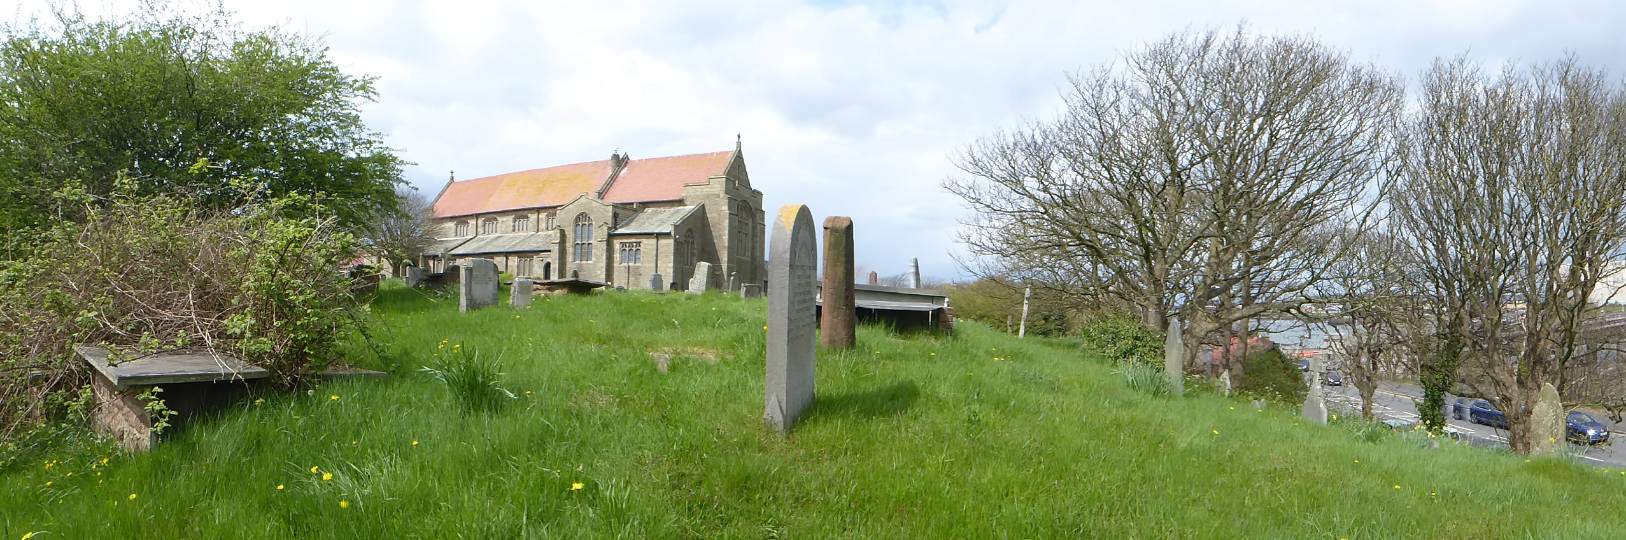 2 walney-st-marys-church-cemetery-furness-stories-behind-the-stones-rod-white-history